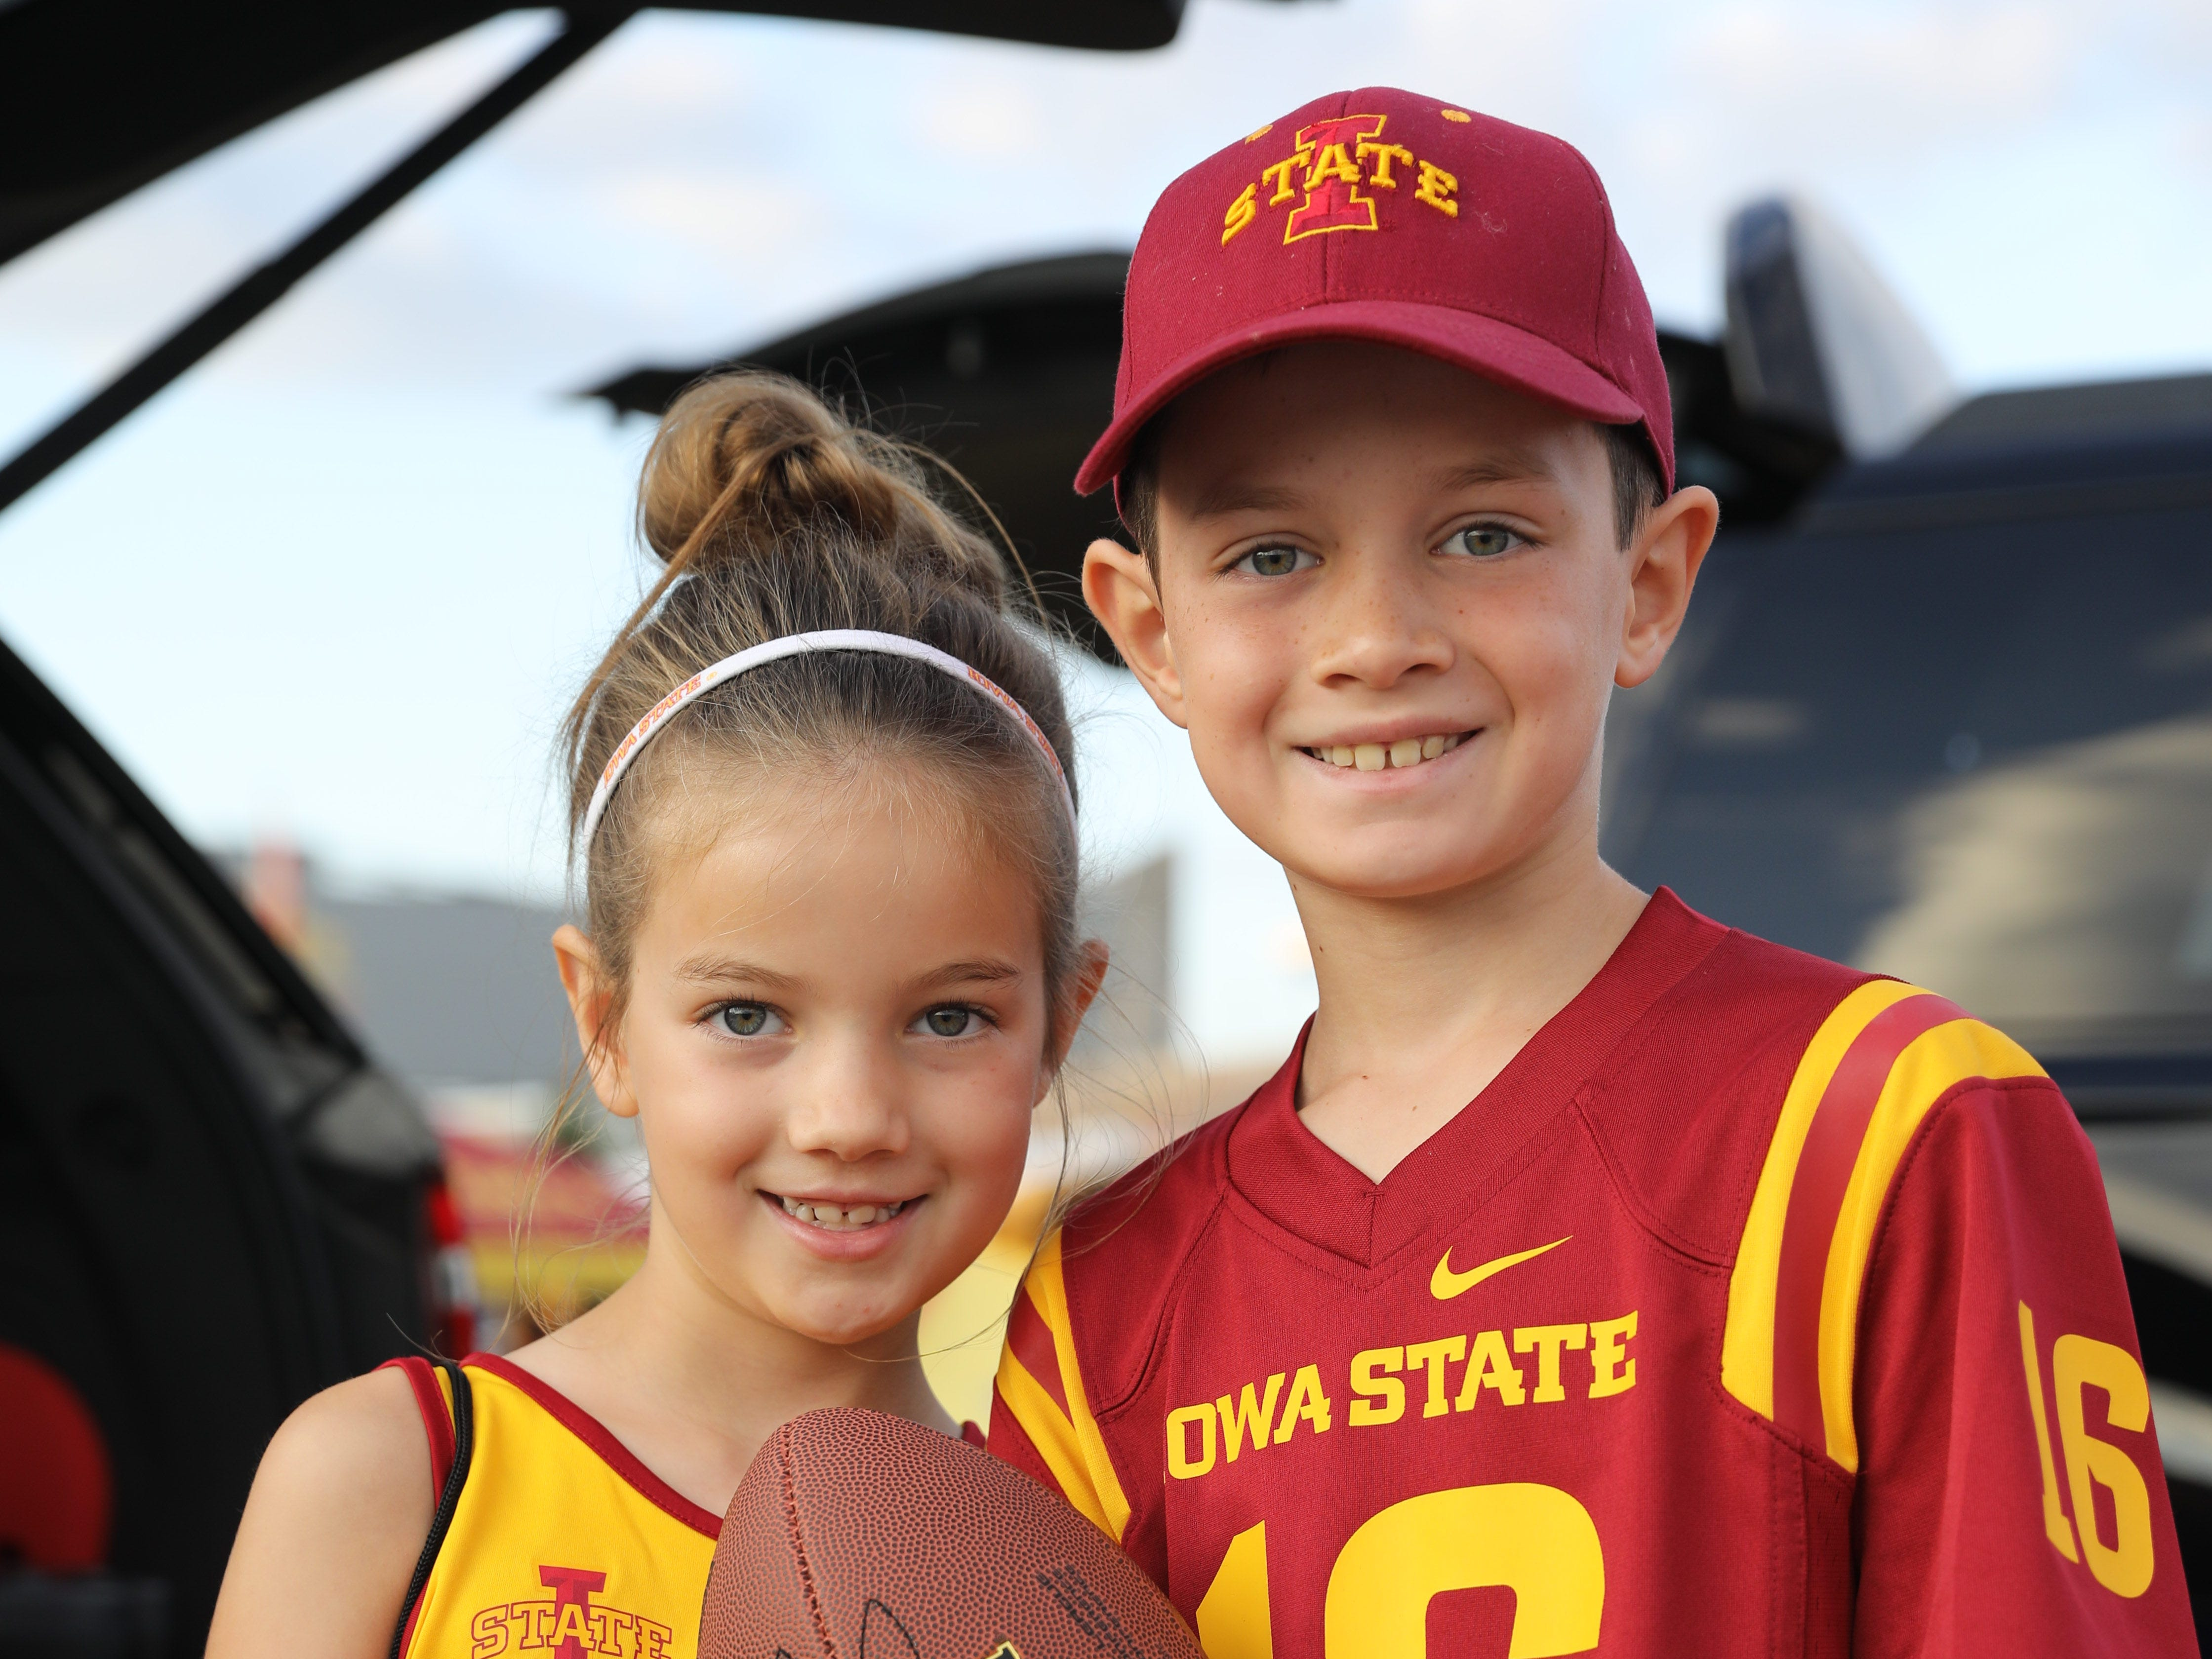 Katelyn Glandon, 6, and Nathan Glandon, 9, of Omaha, Saturday, Sept. 15, 2018, before the Iowa State football game against Oklahoma in Ames.